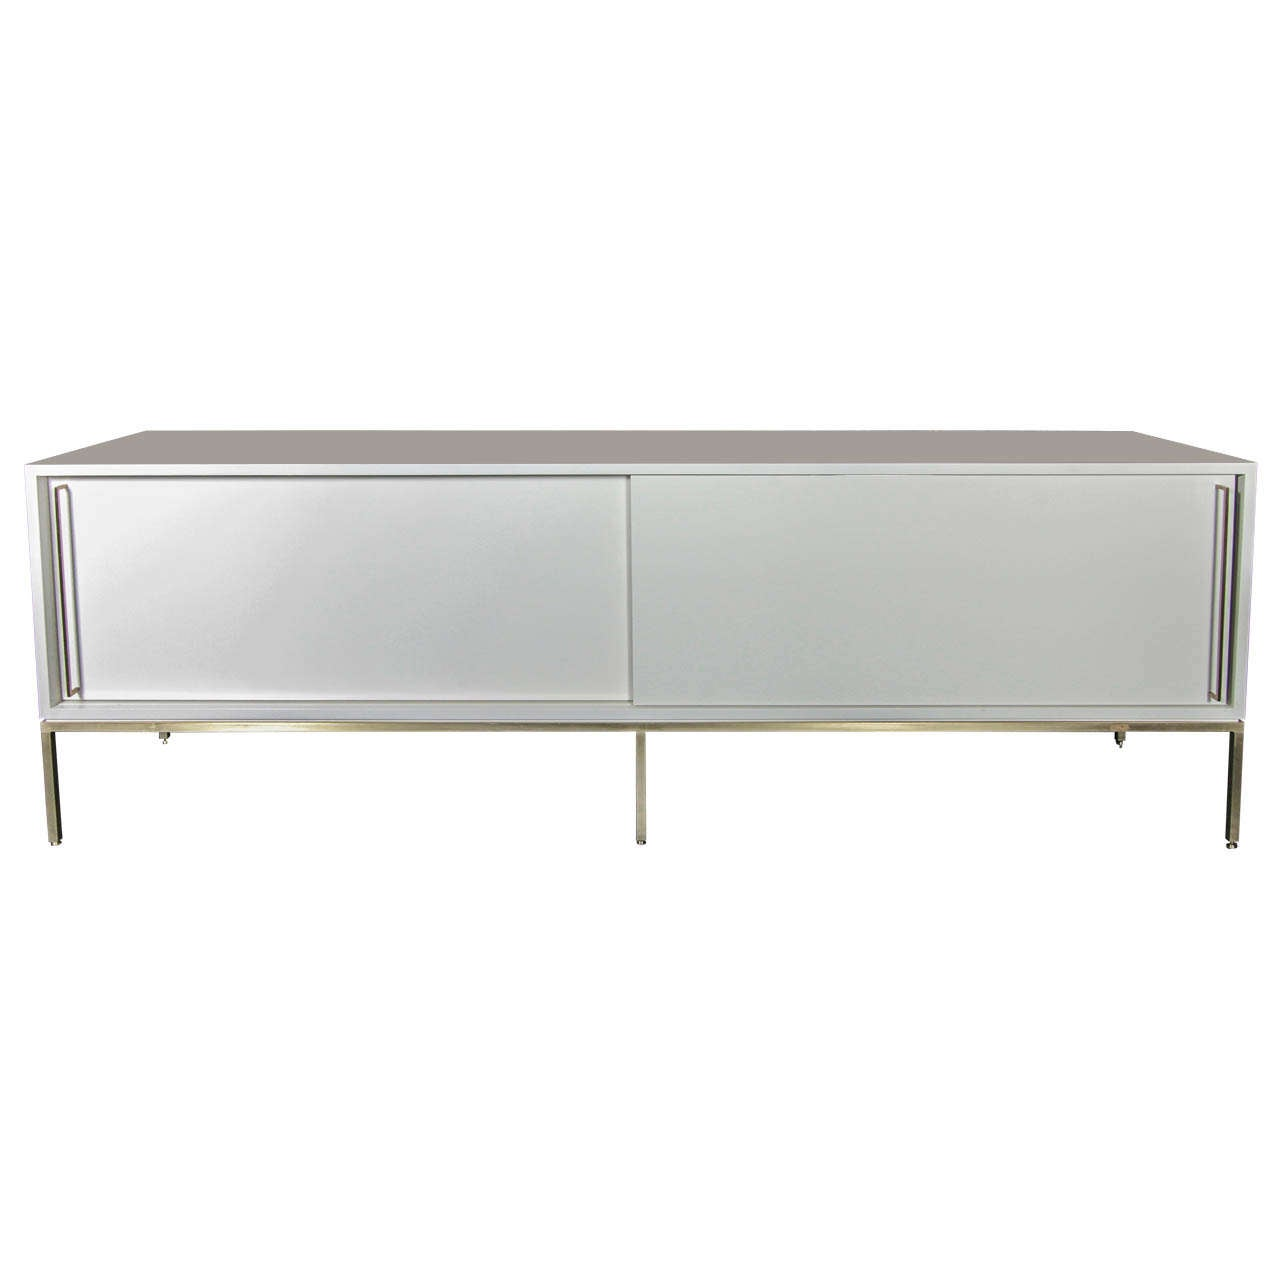 re: 379 credenza in high gloss soft chamois on satin brass frame